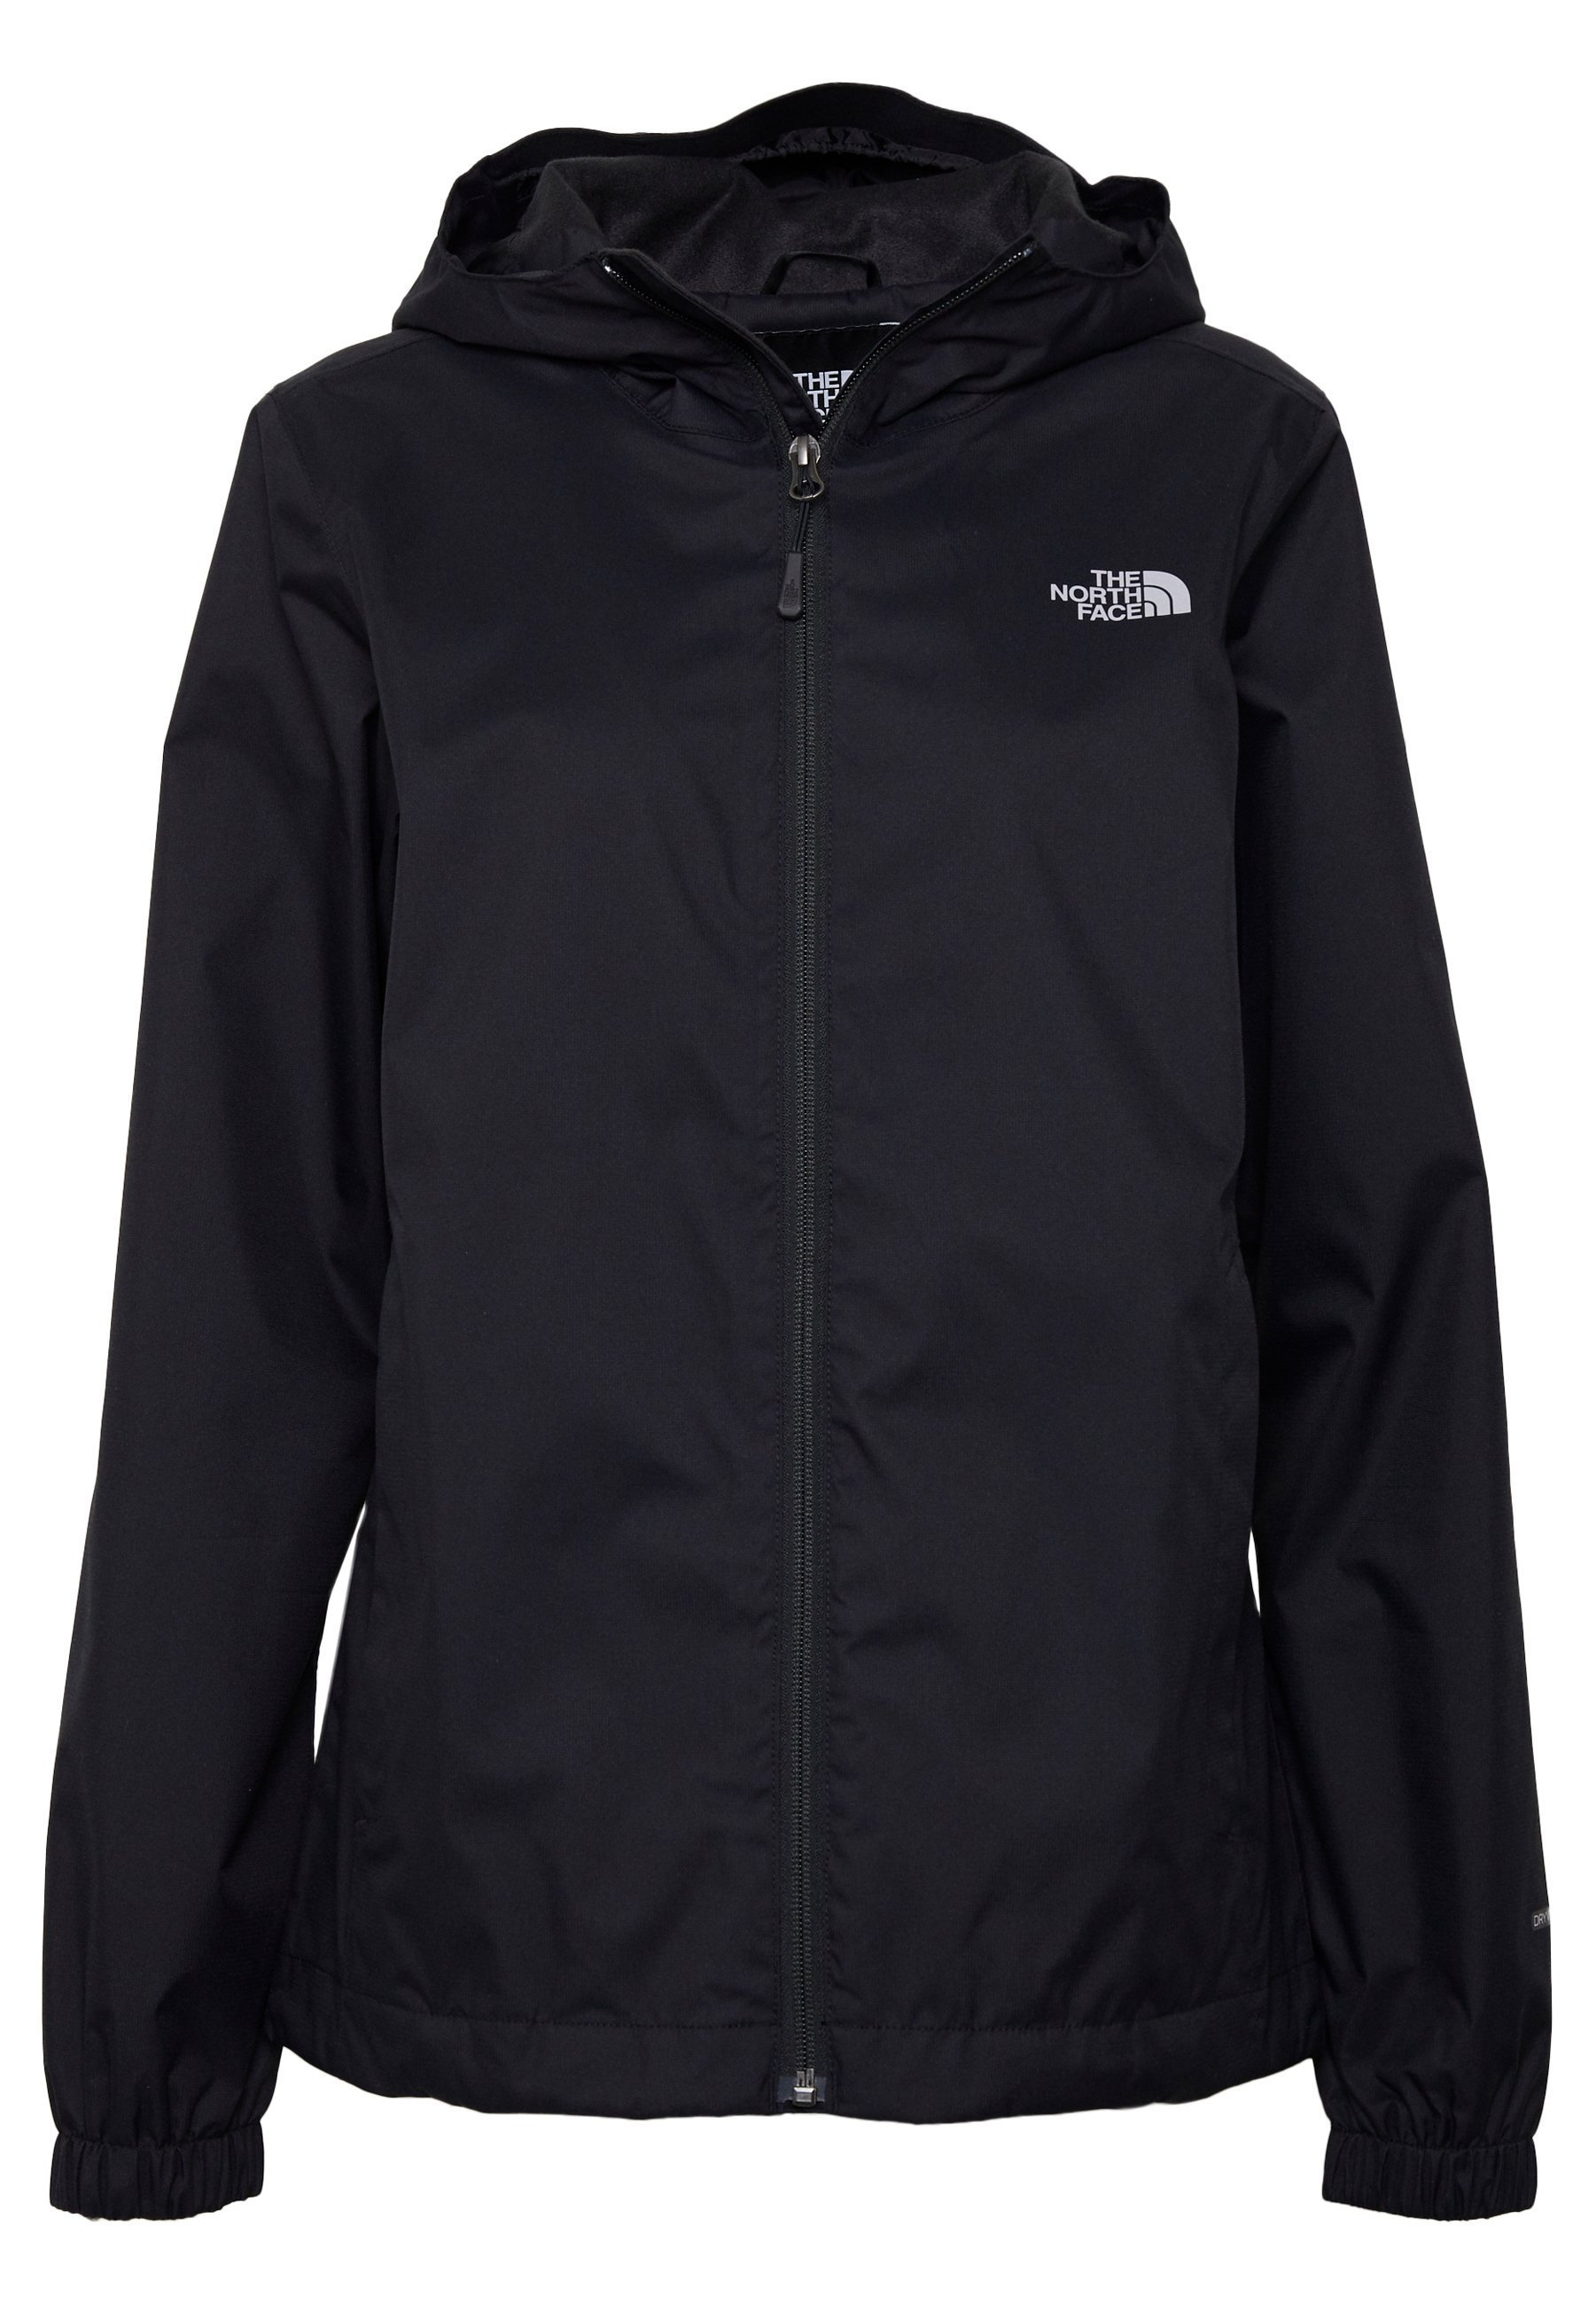 QUEST Hardshelljacke blackfoil grey